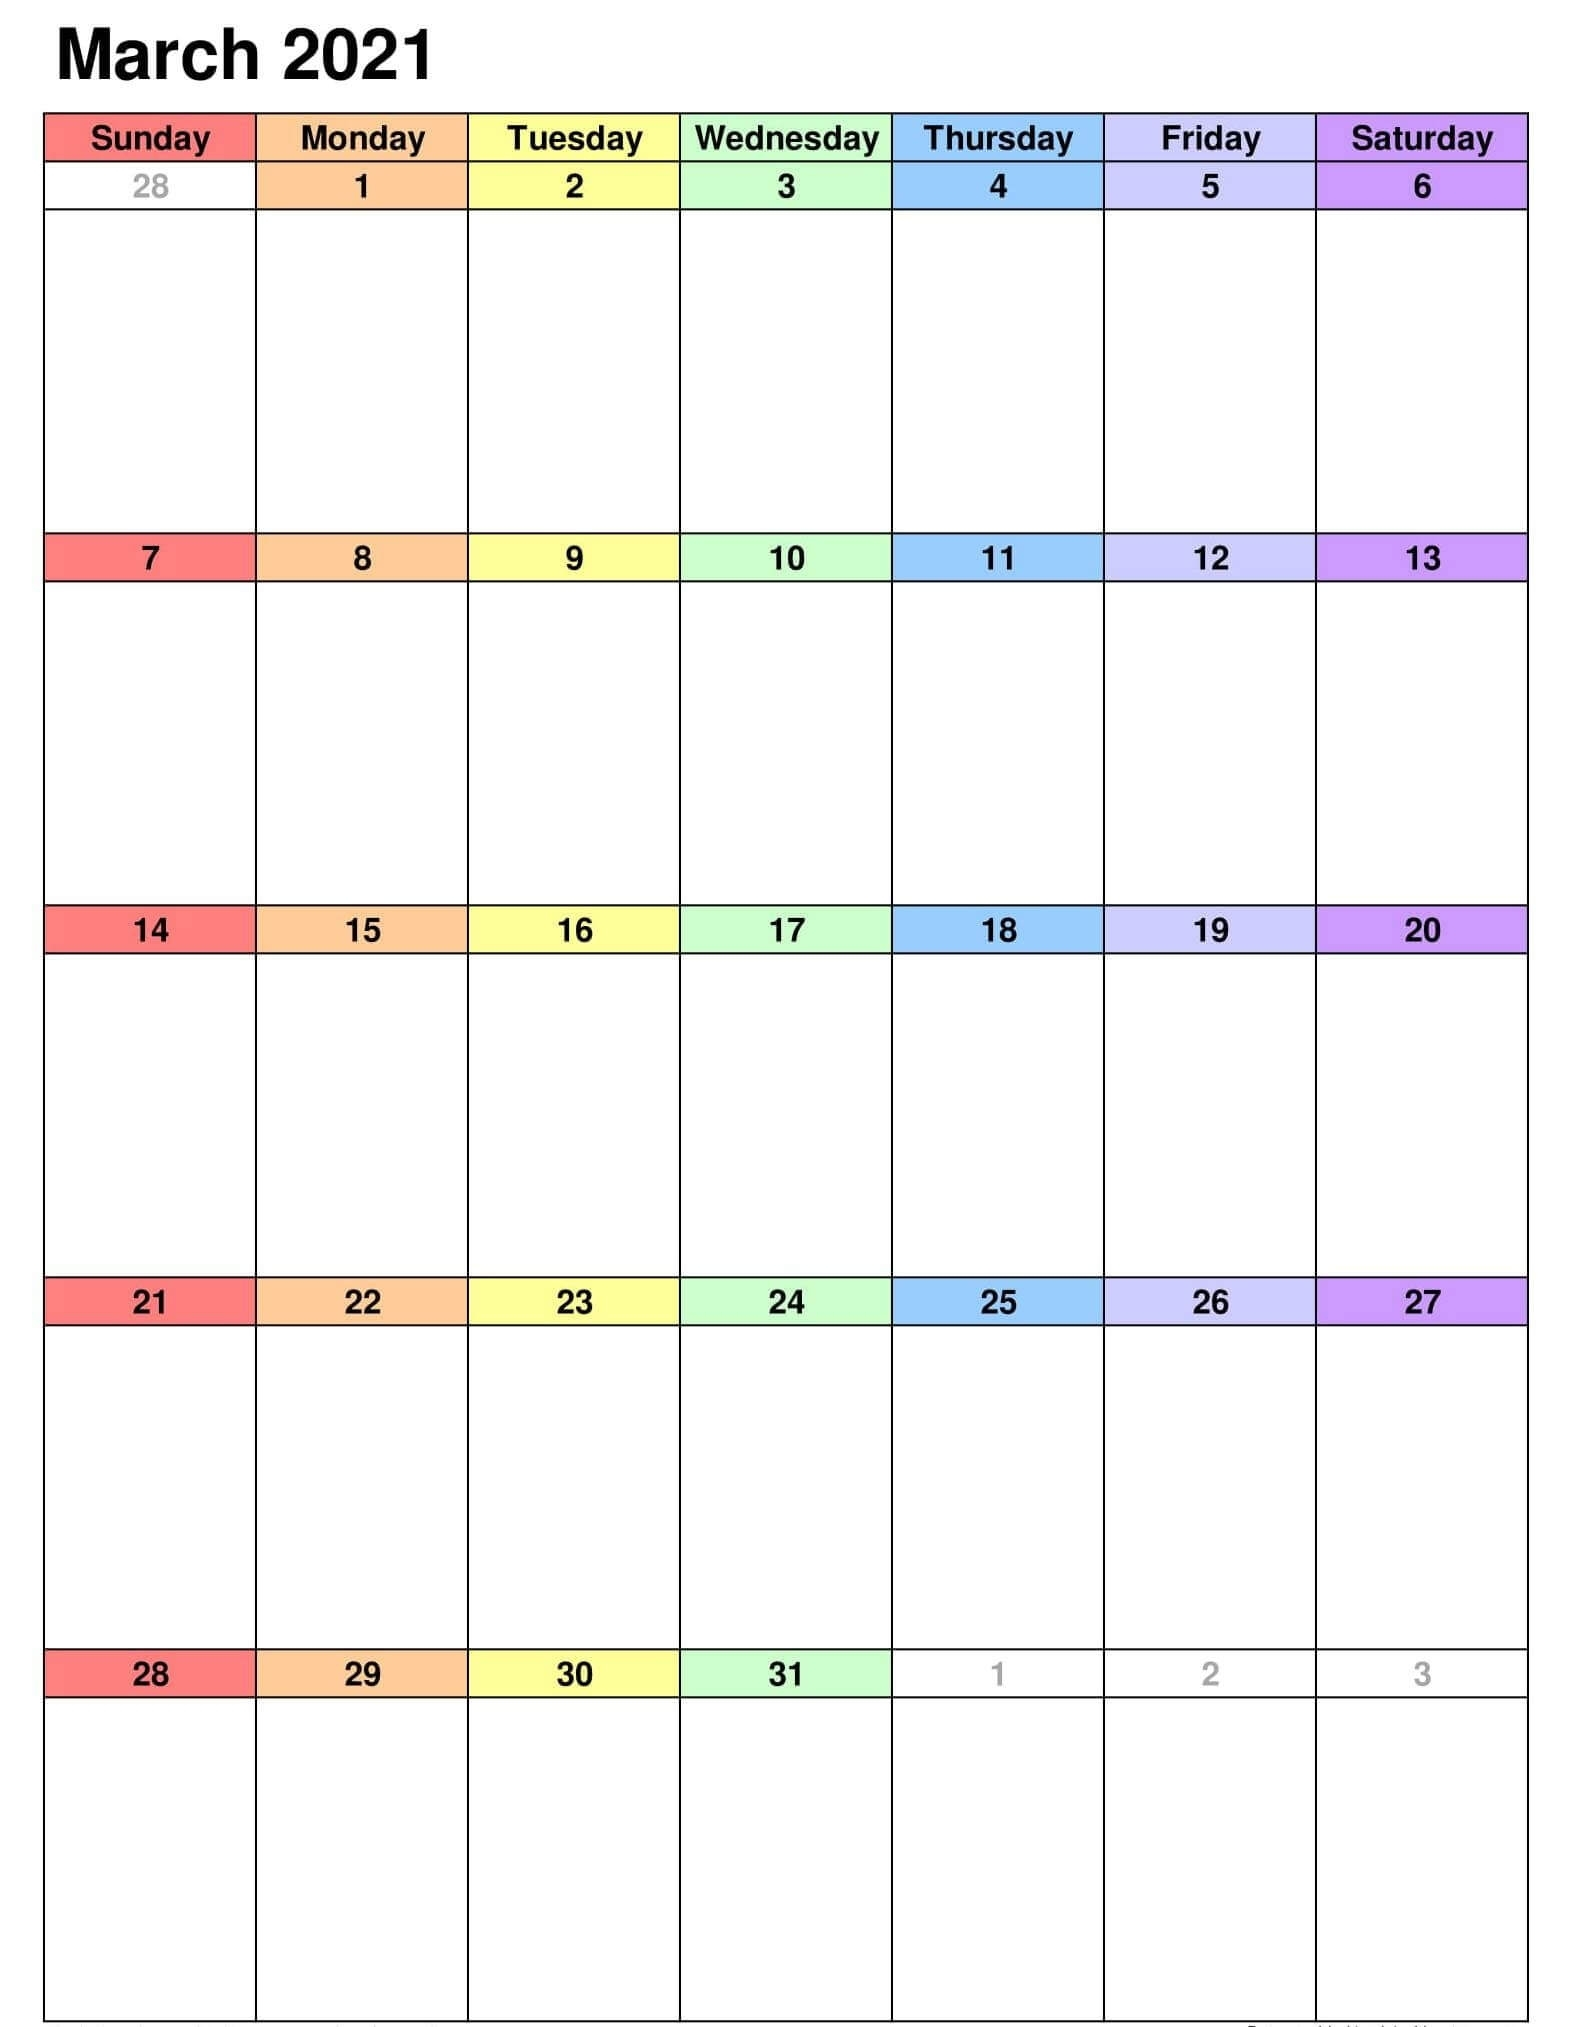 March 2021 Calendar Excel Template Printable - One